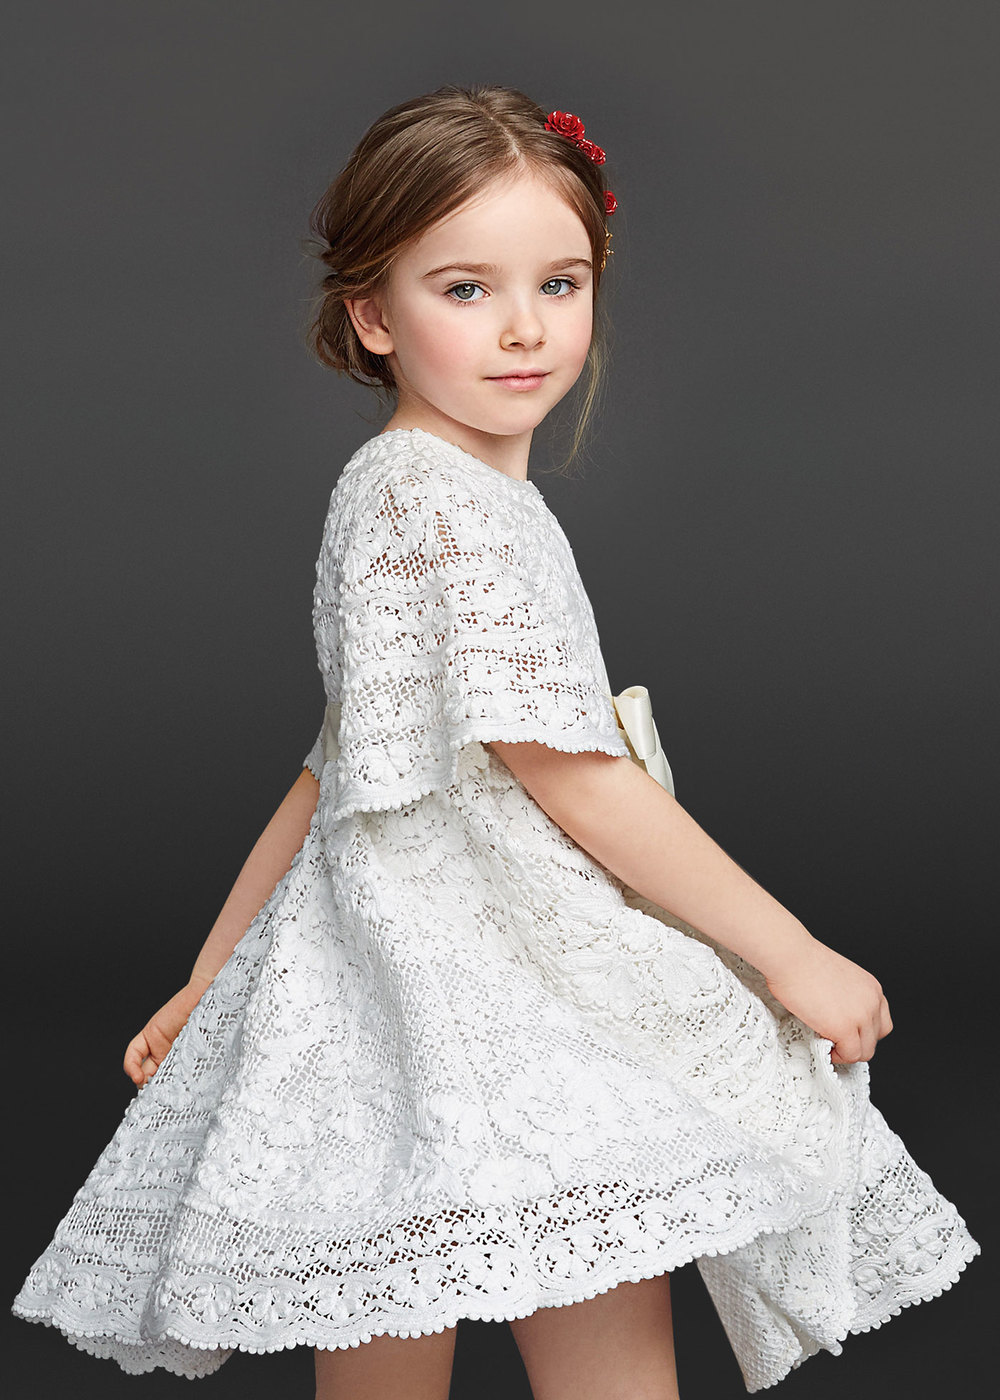 dolce-and-gabbana-winter-2016-child-collection-62-zoom.jpg